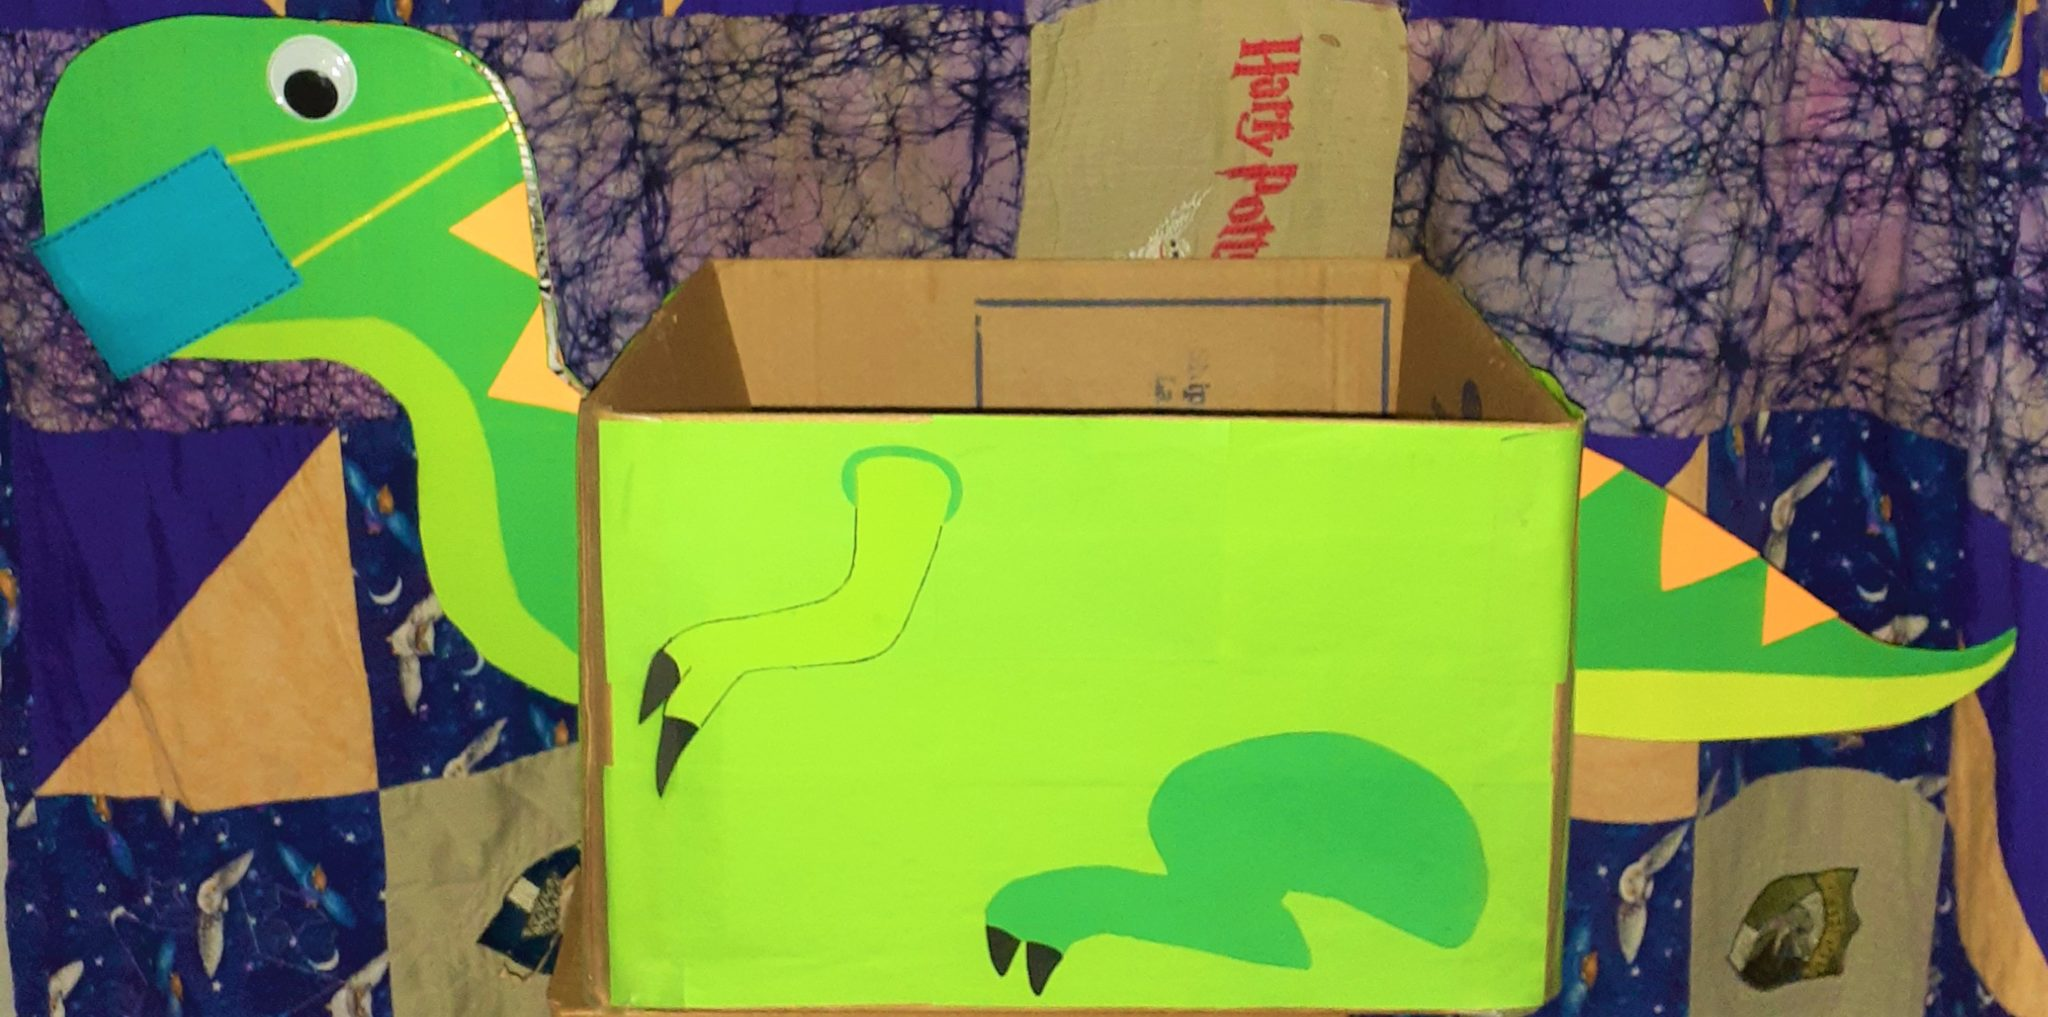 dinosaur covid book boxes